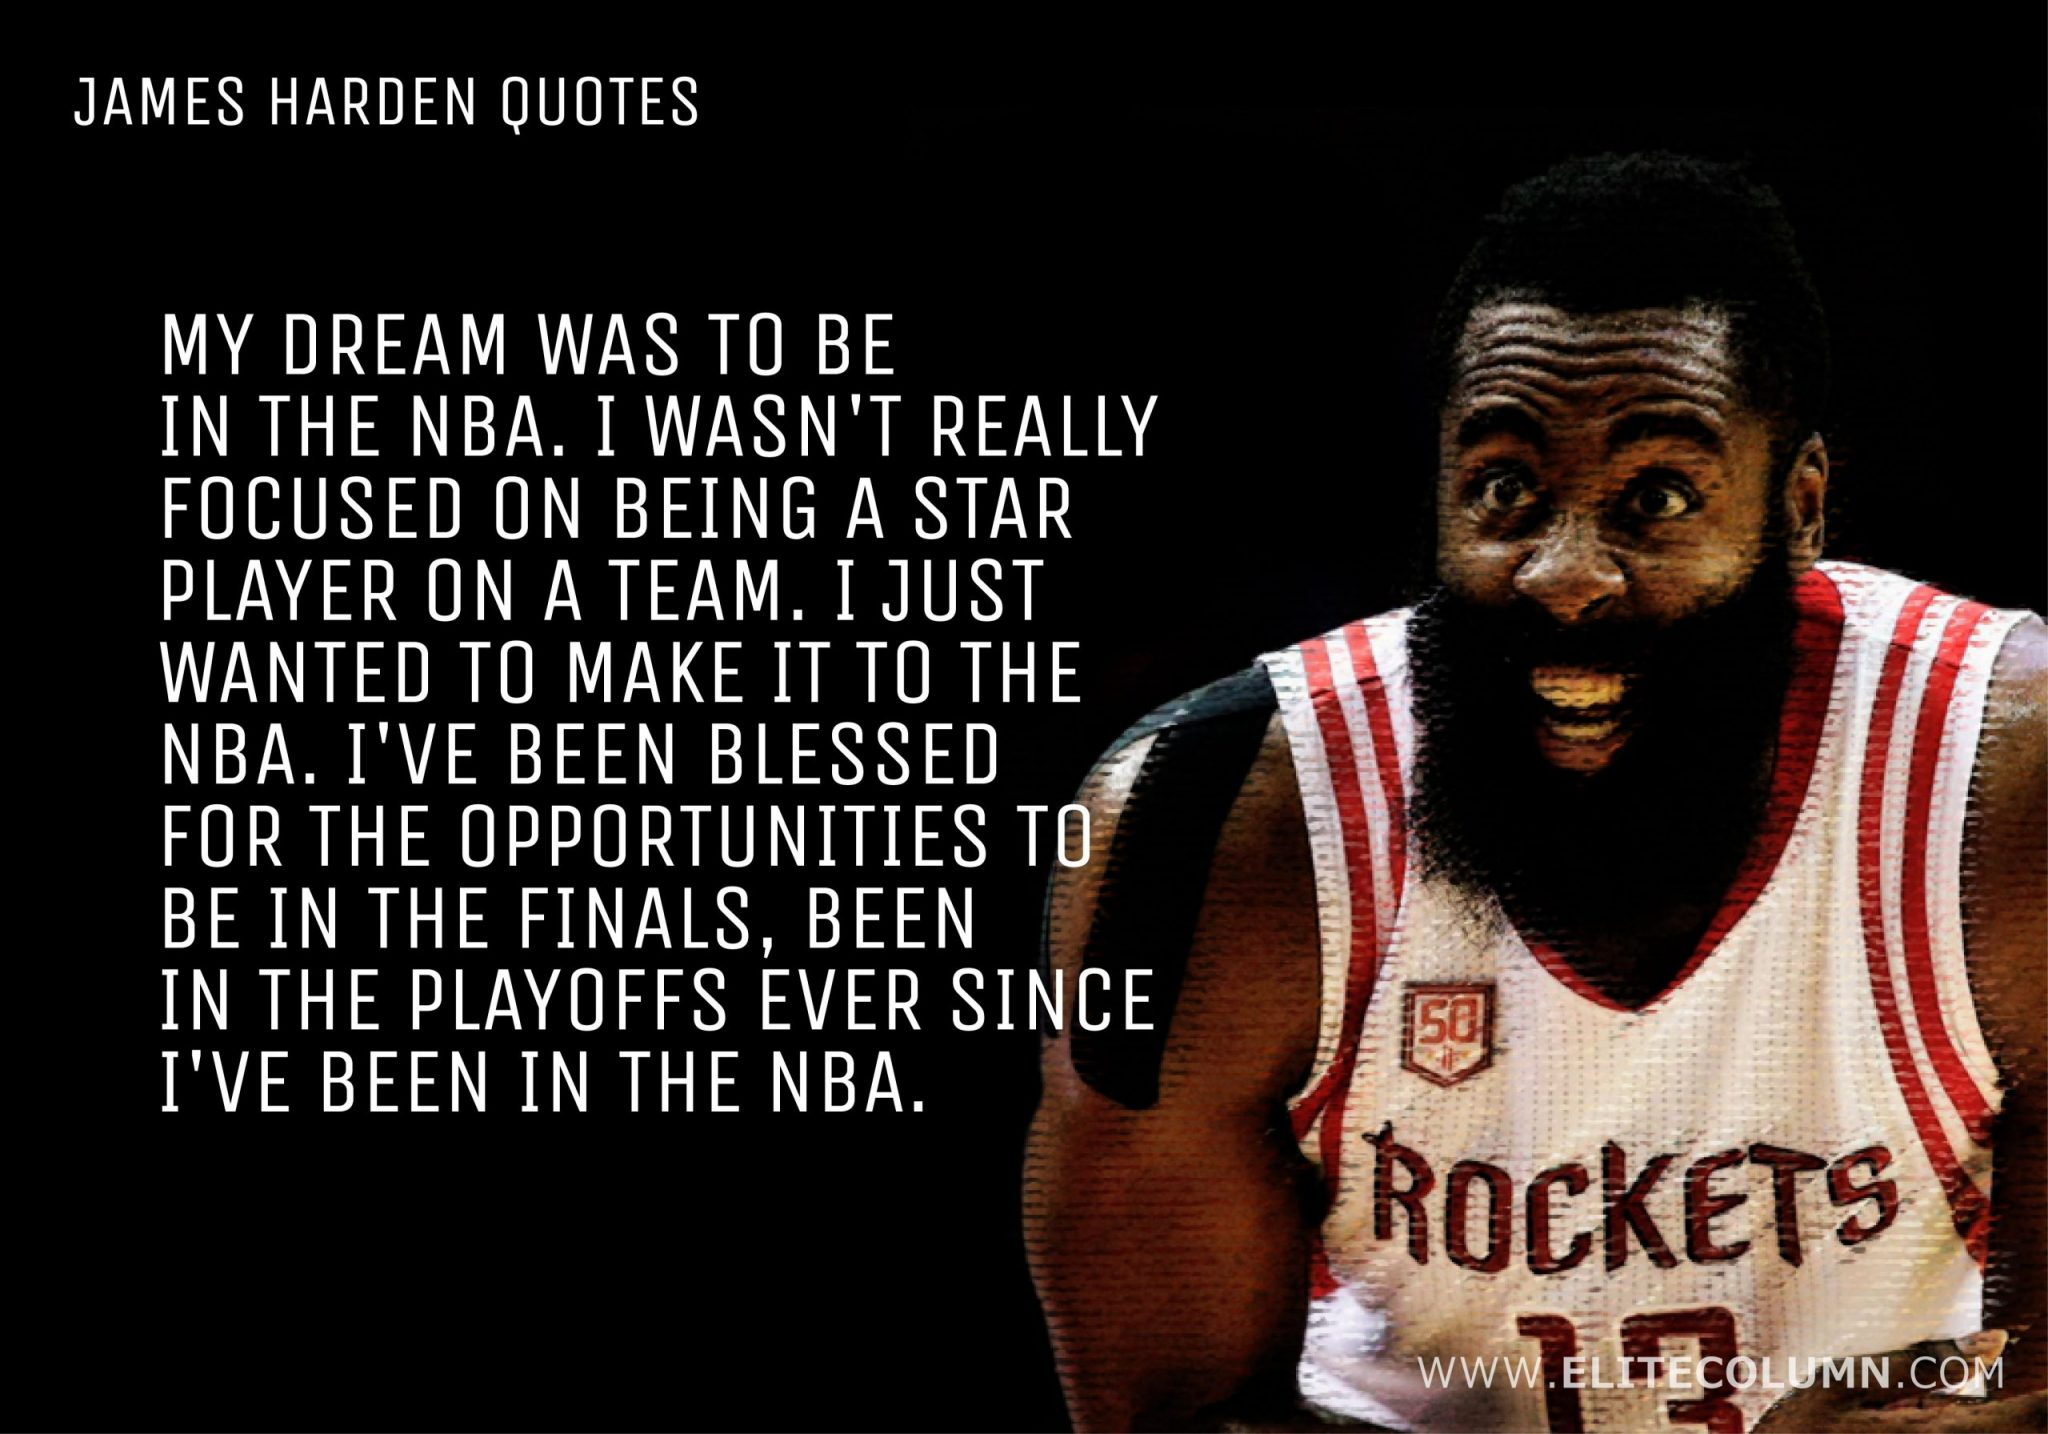 James Harden Quotes (2)